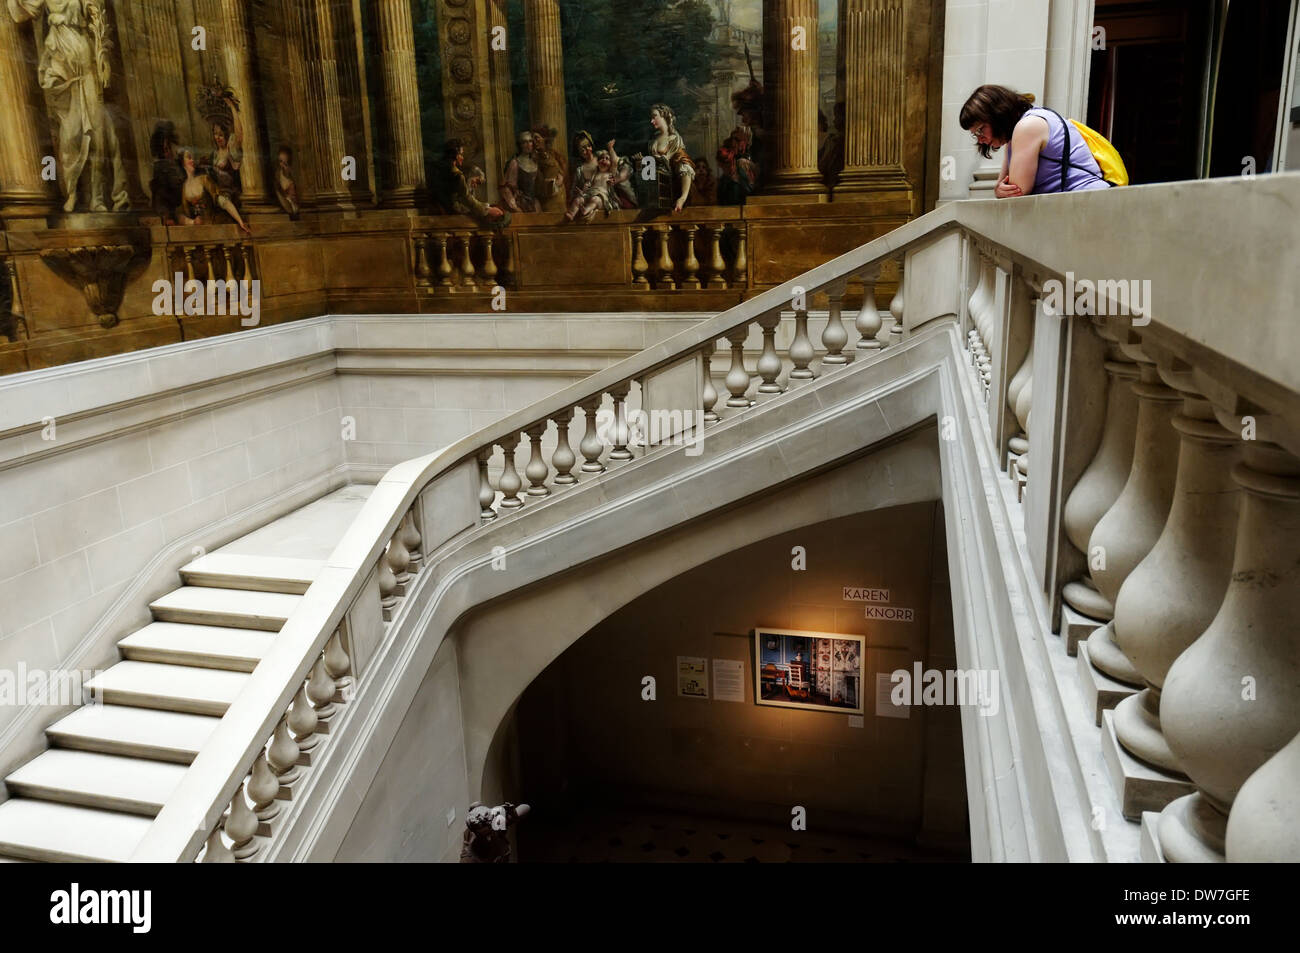 Inside the Musee Carnavalet, in the Marais area of Paris - Stock Image